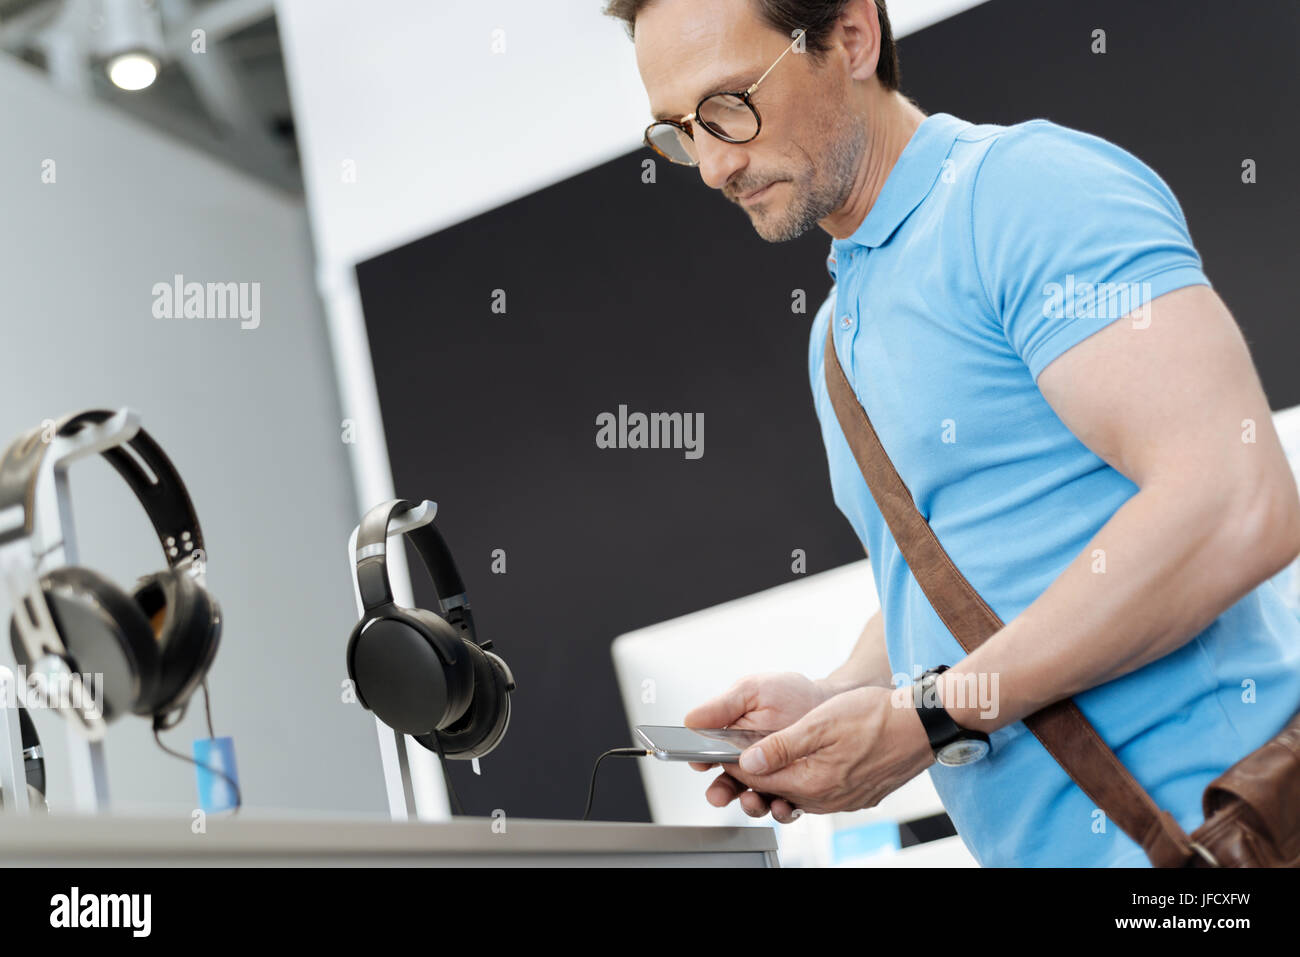 These are quite good. Focused adult customer standing at a display and trying out the latest models of headphones - Stock Image